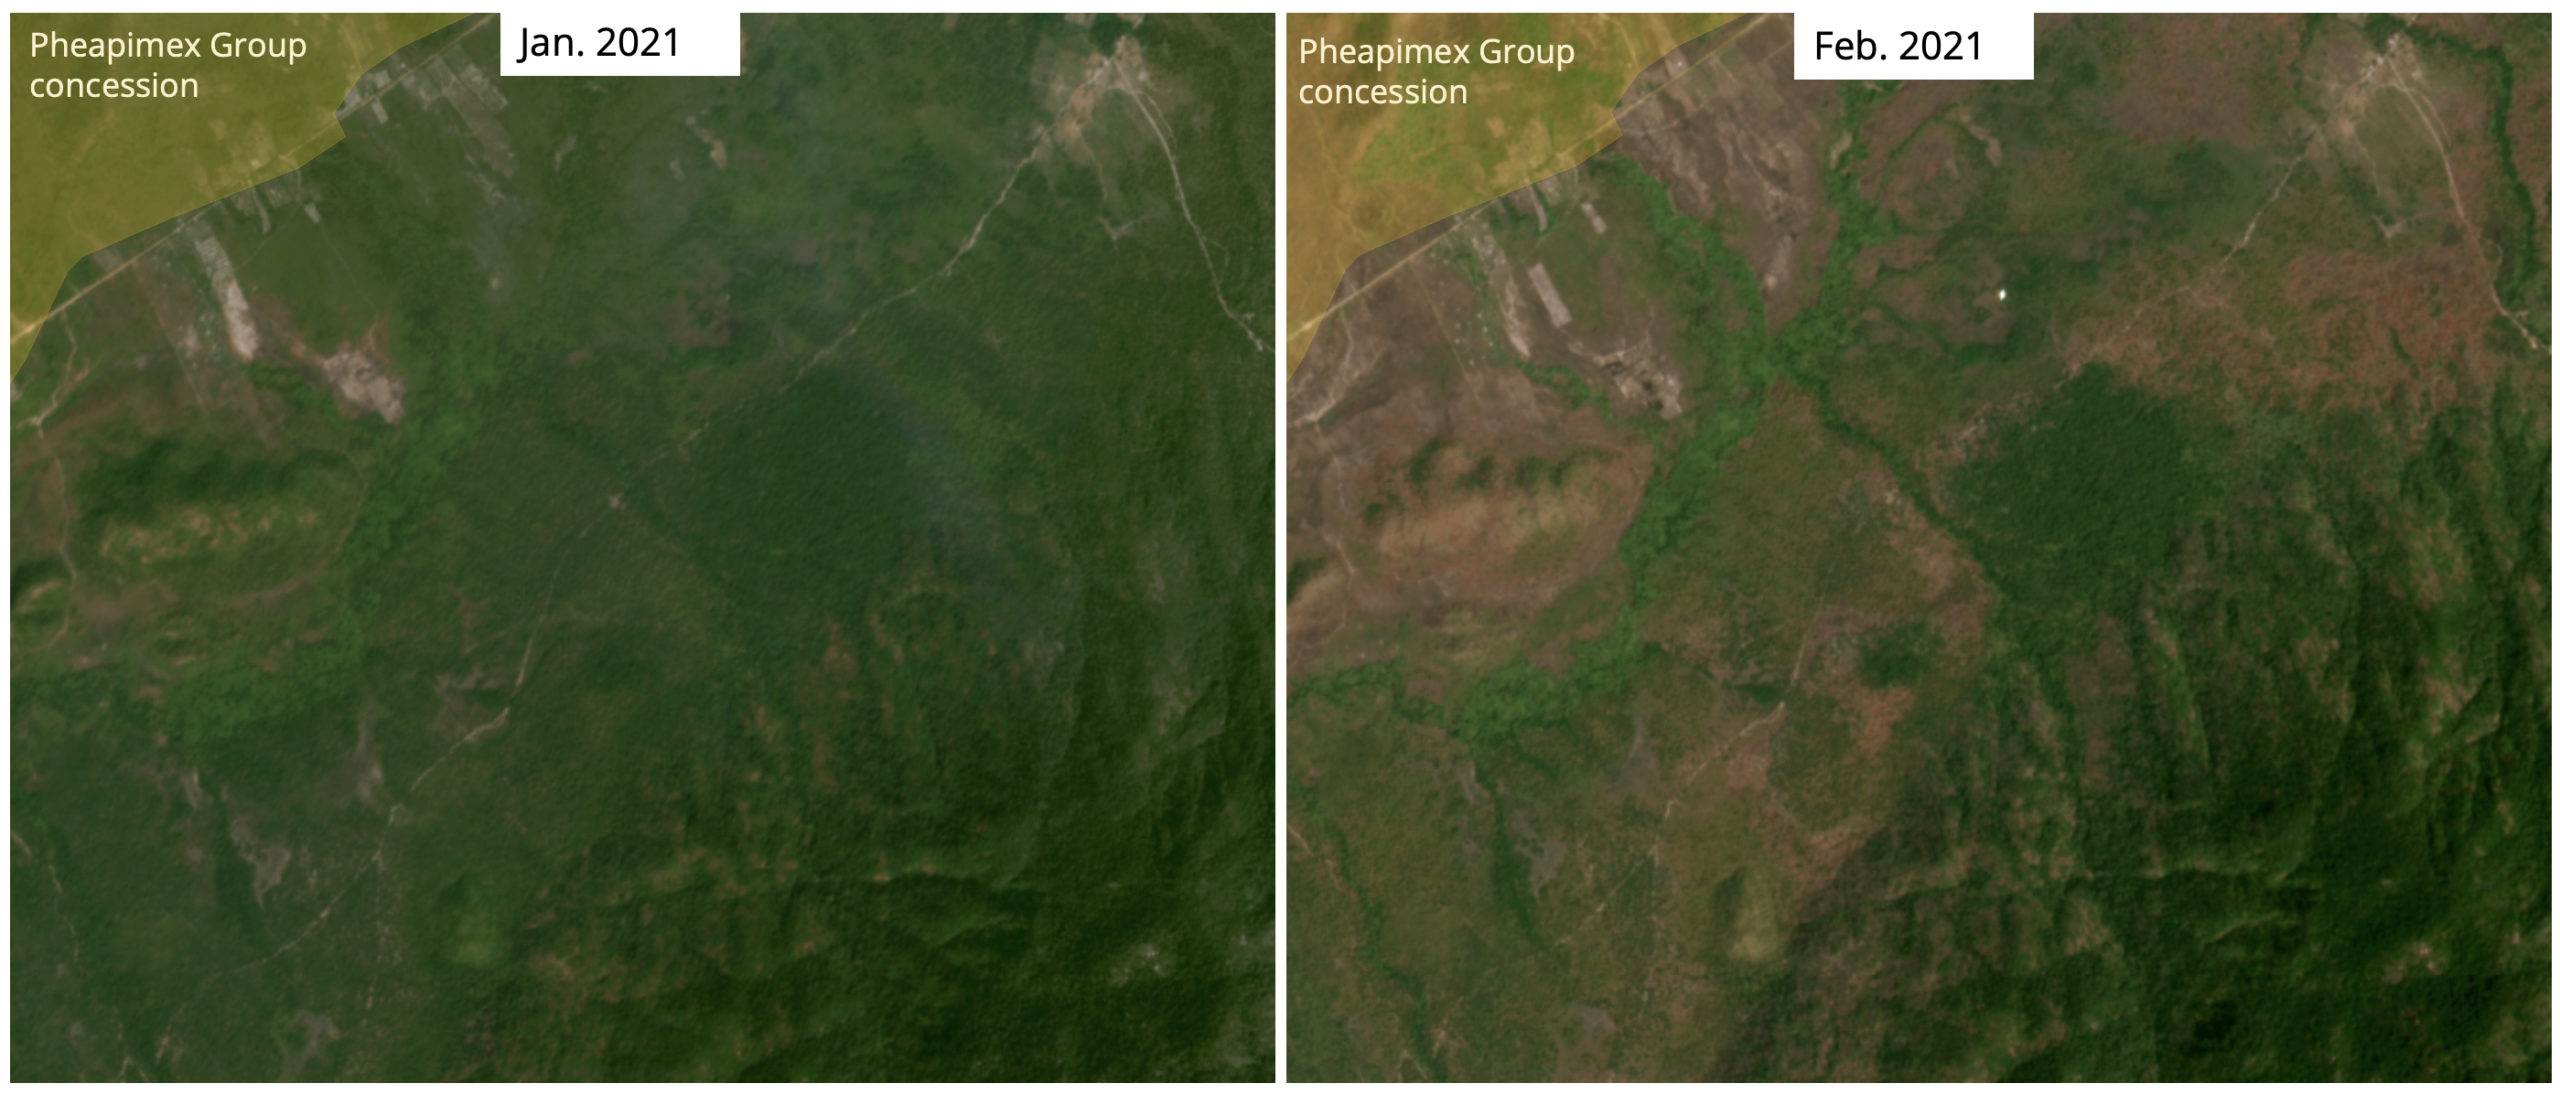 Satellite imagery shows recent burned areas in another area near Pheapimex's concession. According to data from U.S. space agency NASA, fire activity began in the concession.